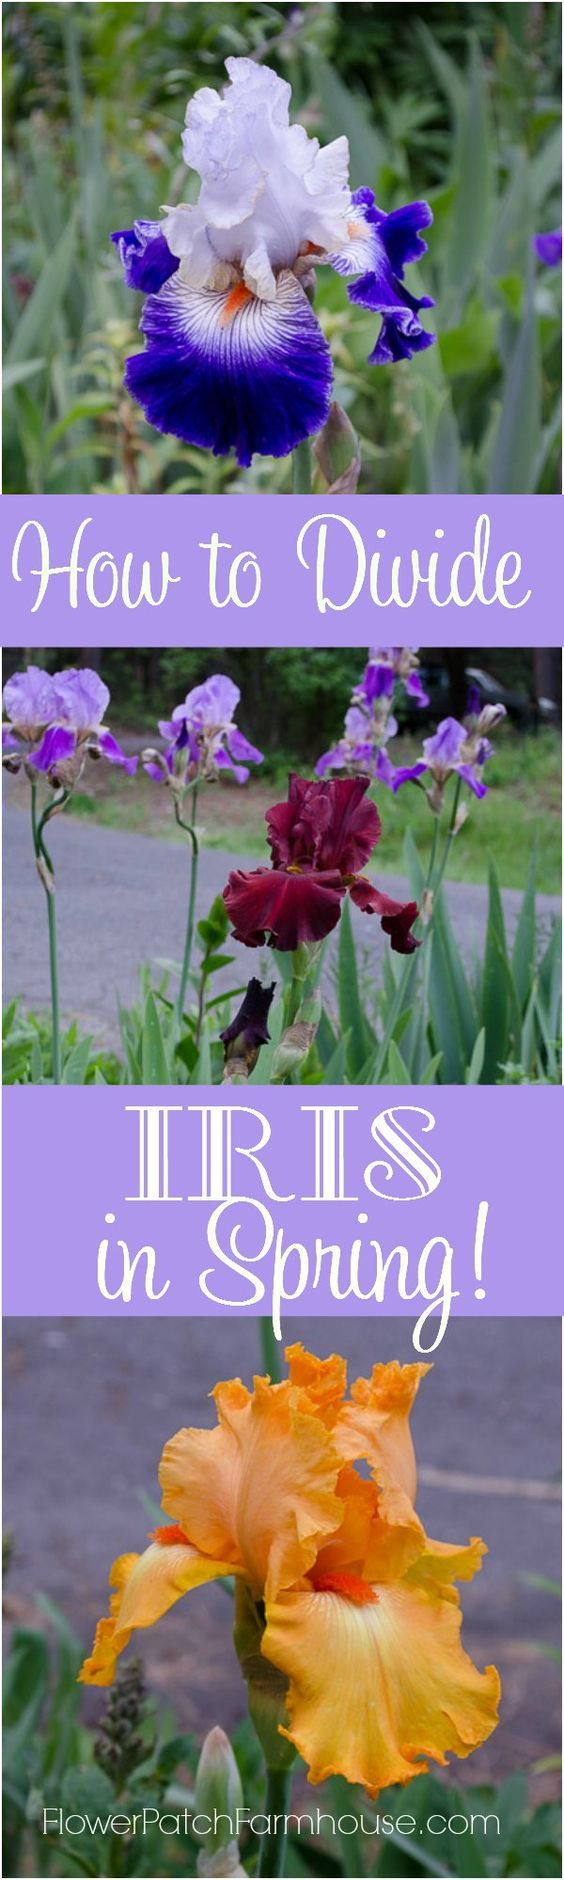 You can divide iris in the spring and still get blooms pinterest how to divide iris in spring successfully and not lose a bloom i do it all the time and have been 100 successful come read about my out of the box izmirmasajfo